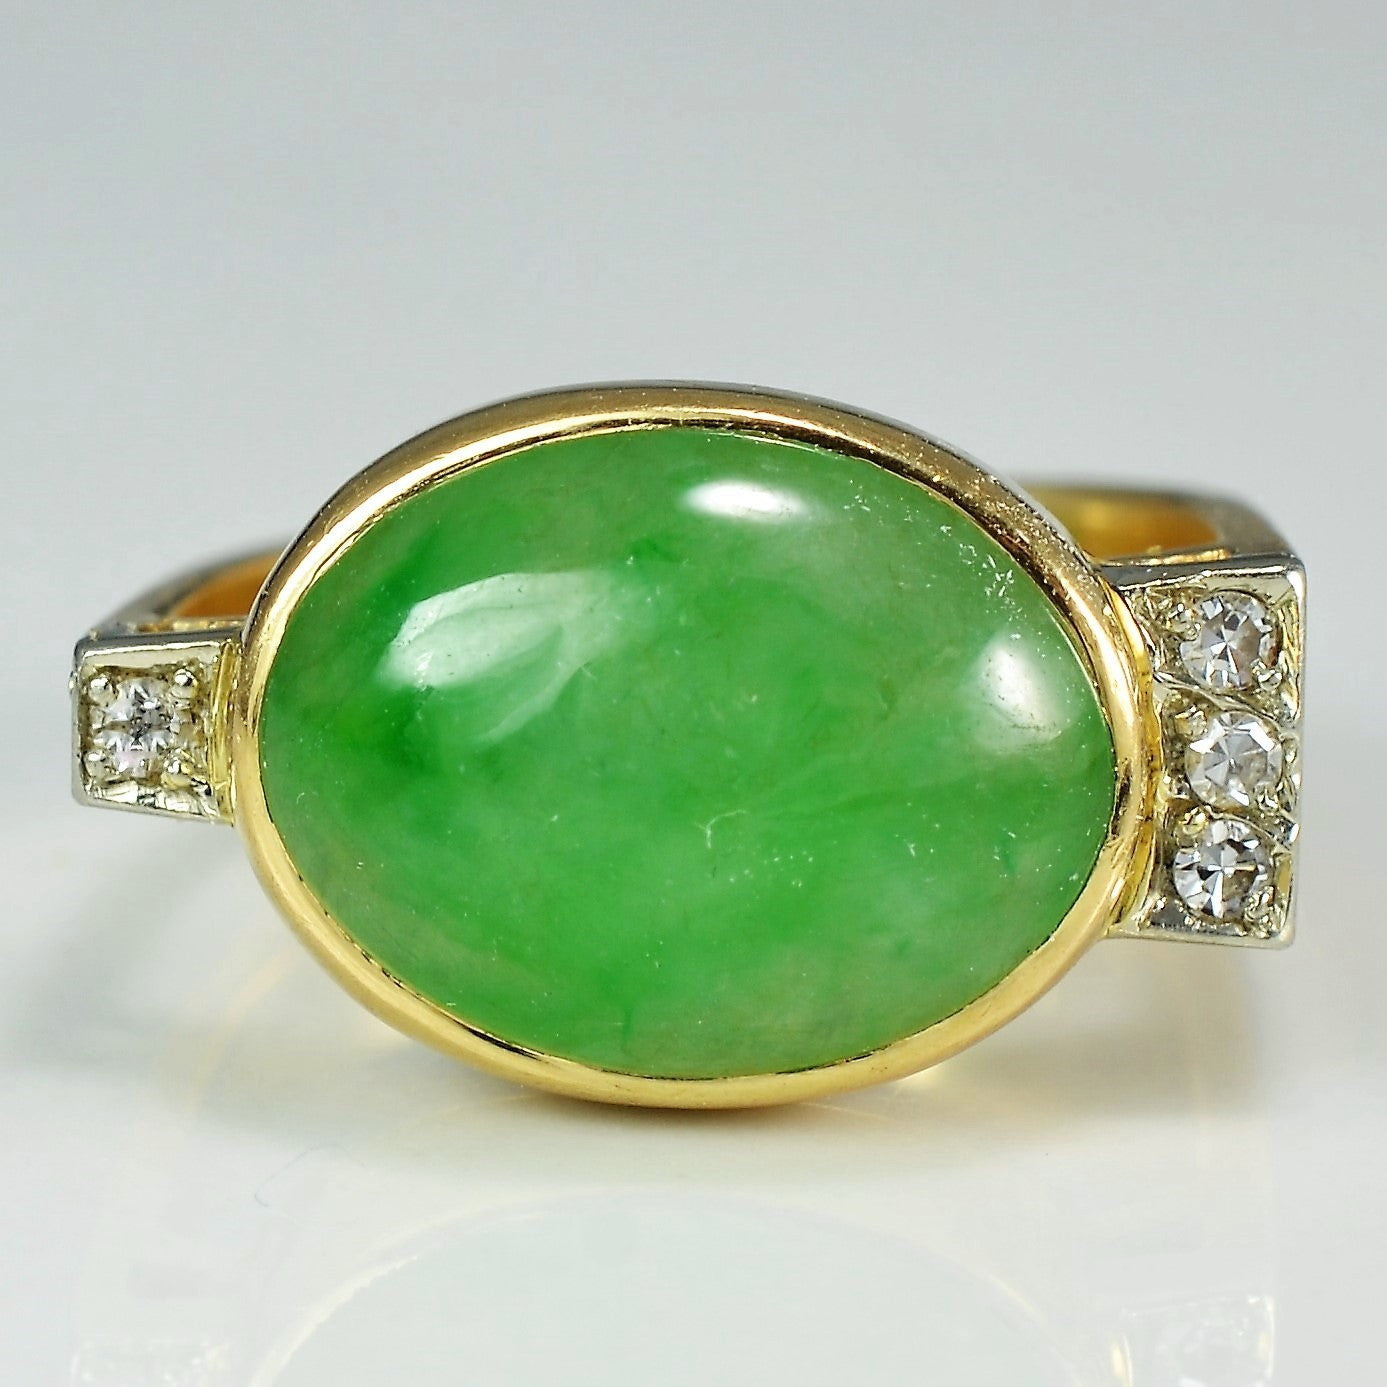 Oval Cabochon Jadeite Cocktail Ring | 0.06 ctw, SZ 5.25 |